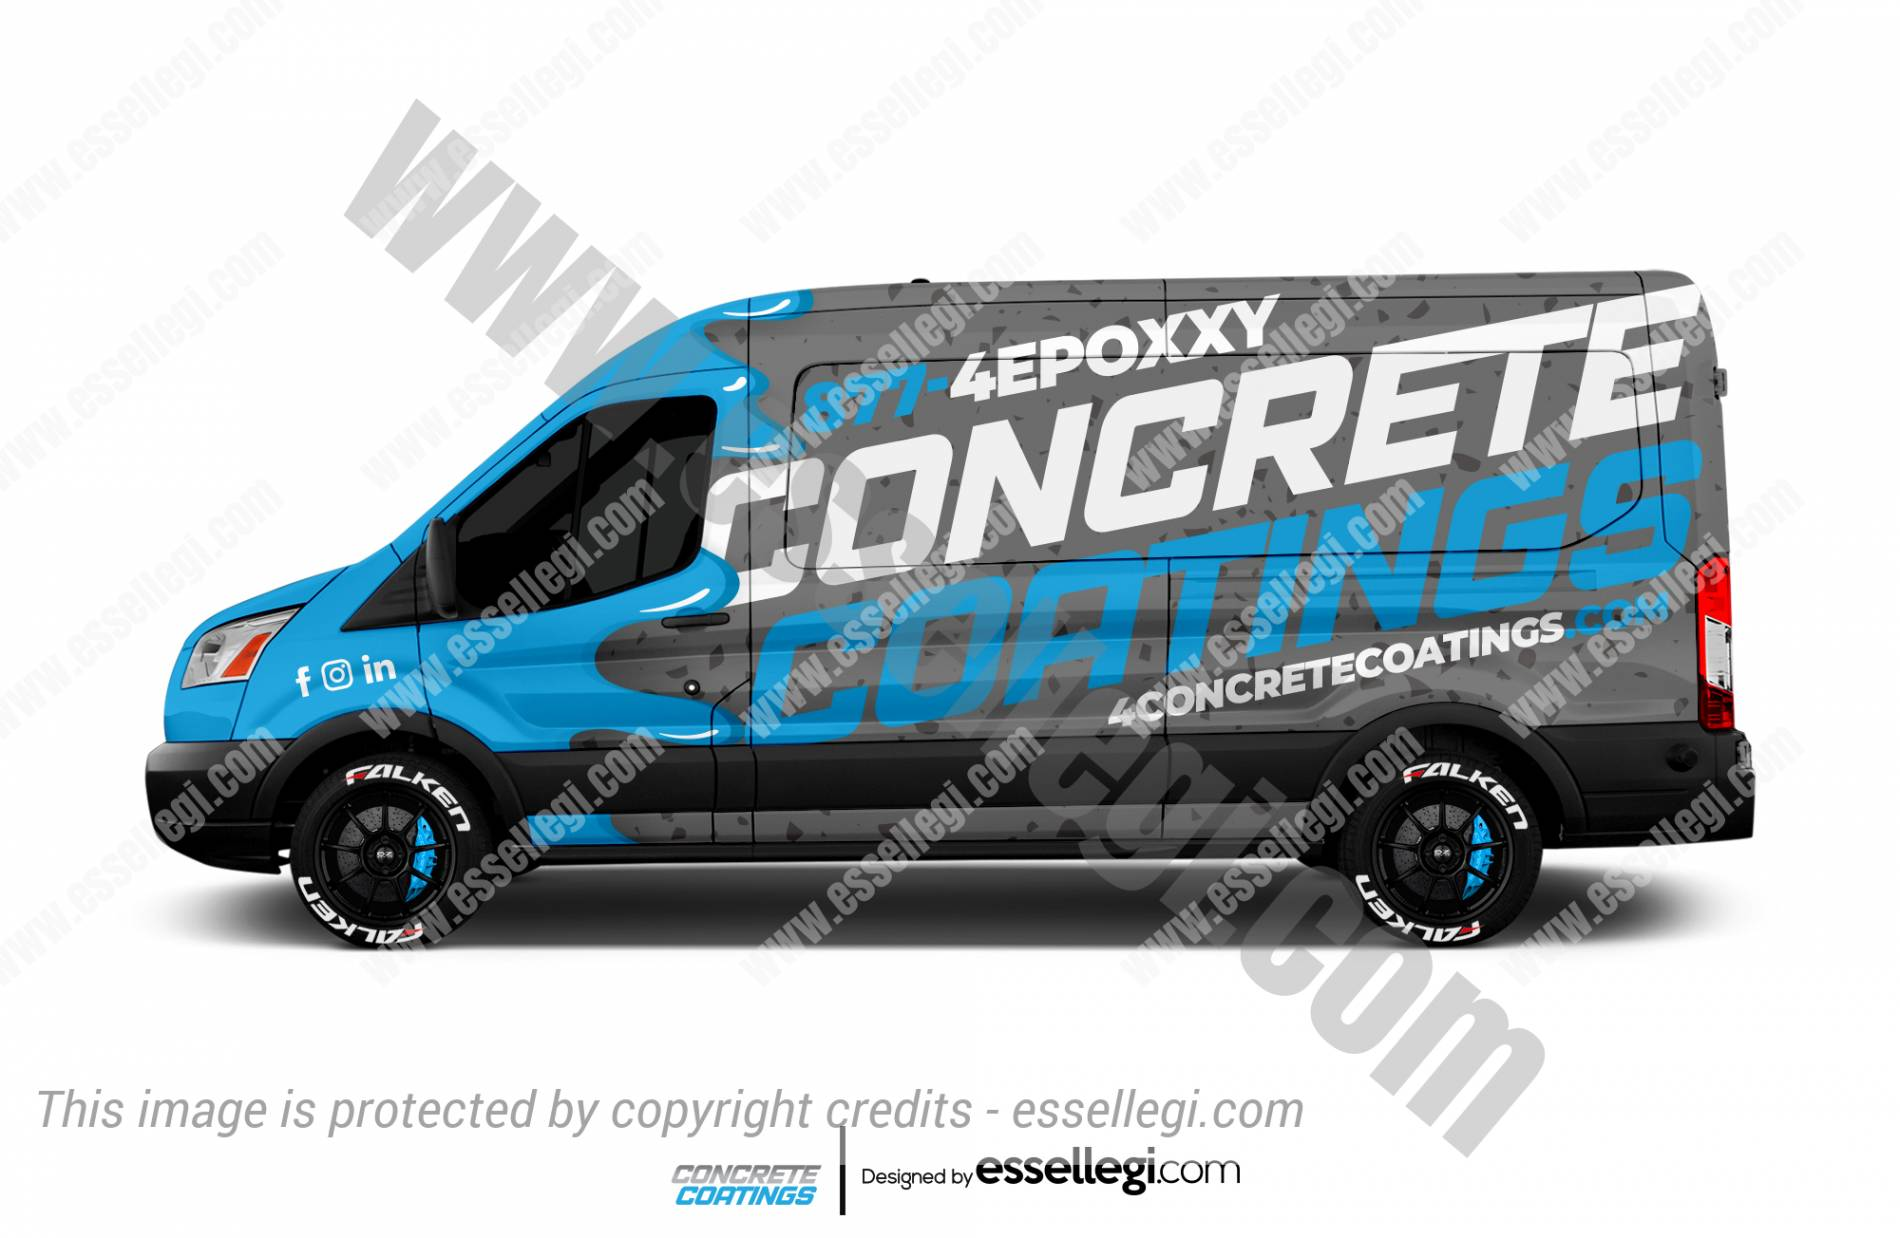 CONCRETE COATINGS | VAN WRAP DESIGN 🇺🇸